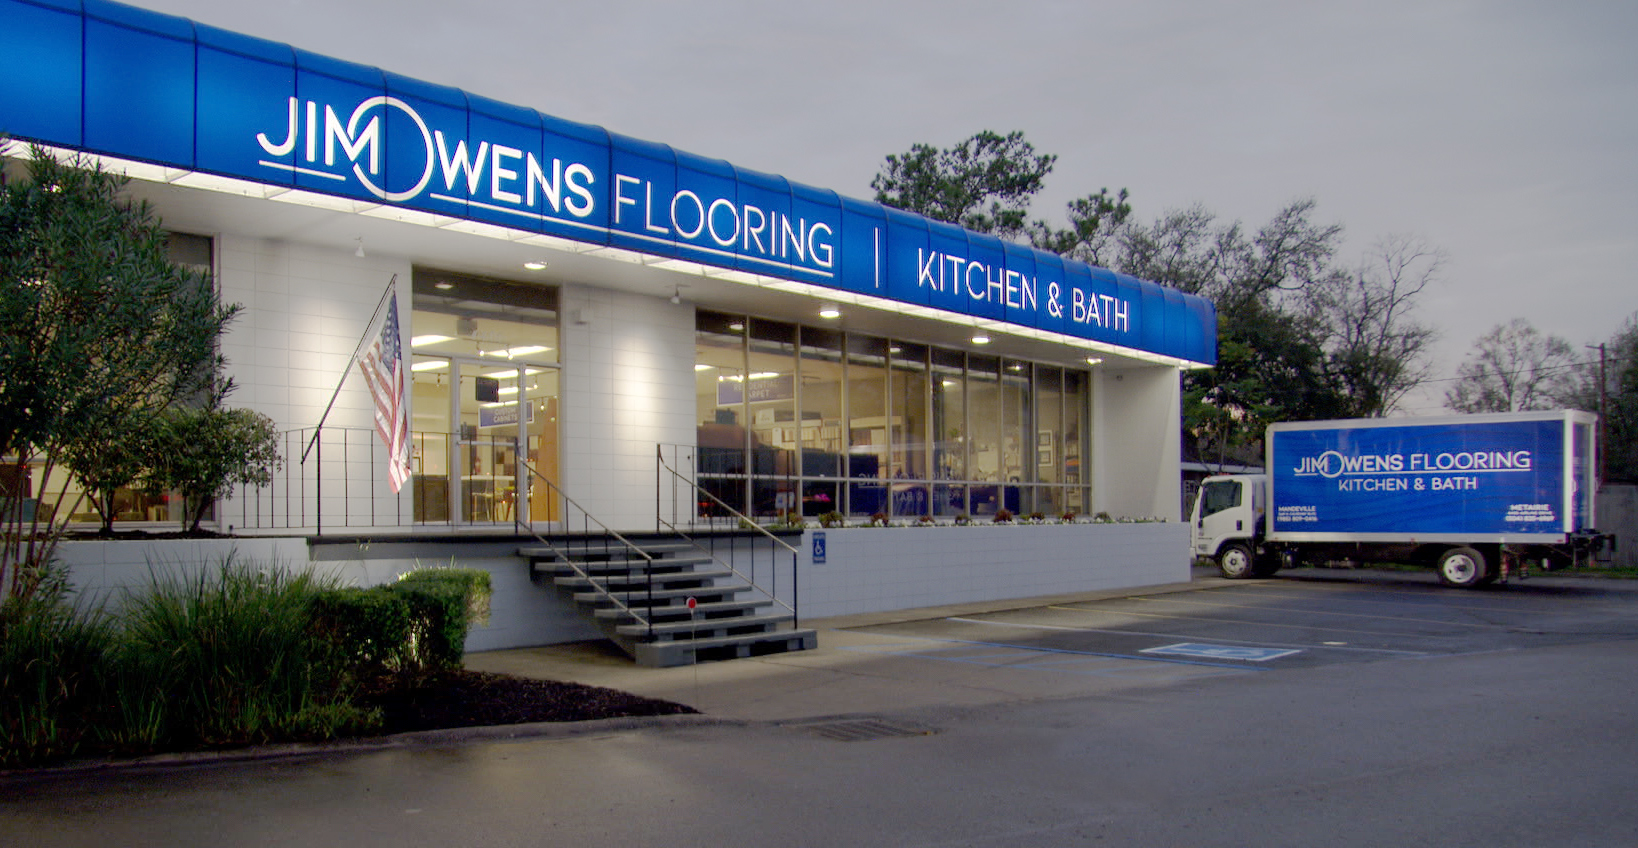 Jim Owens Flooring Kitchen & Bath